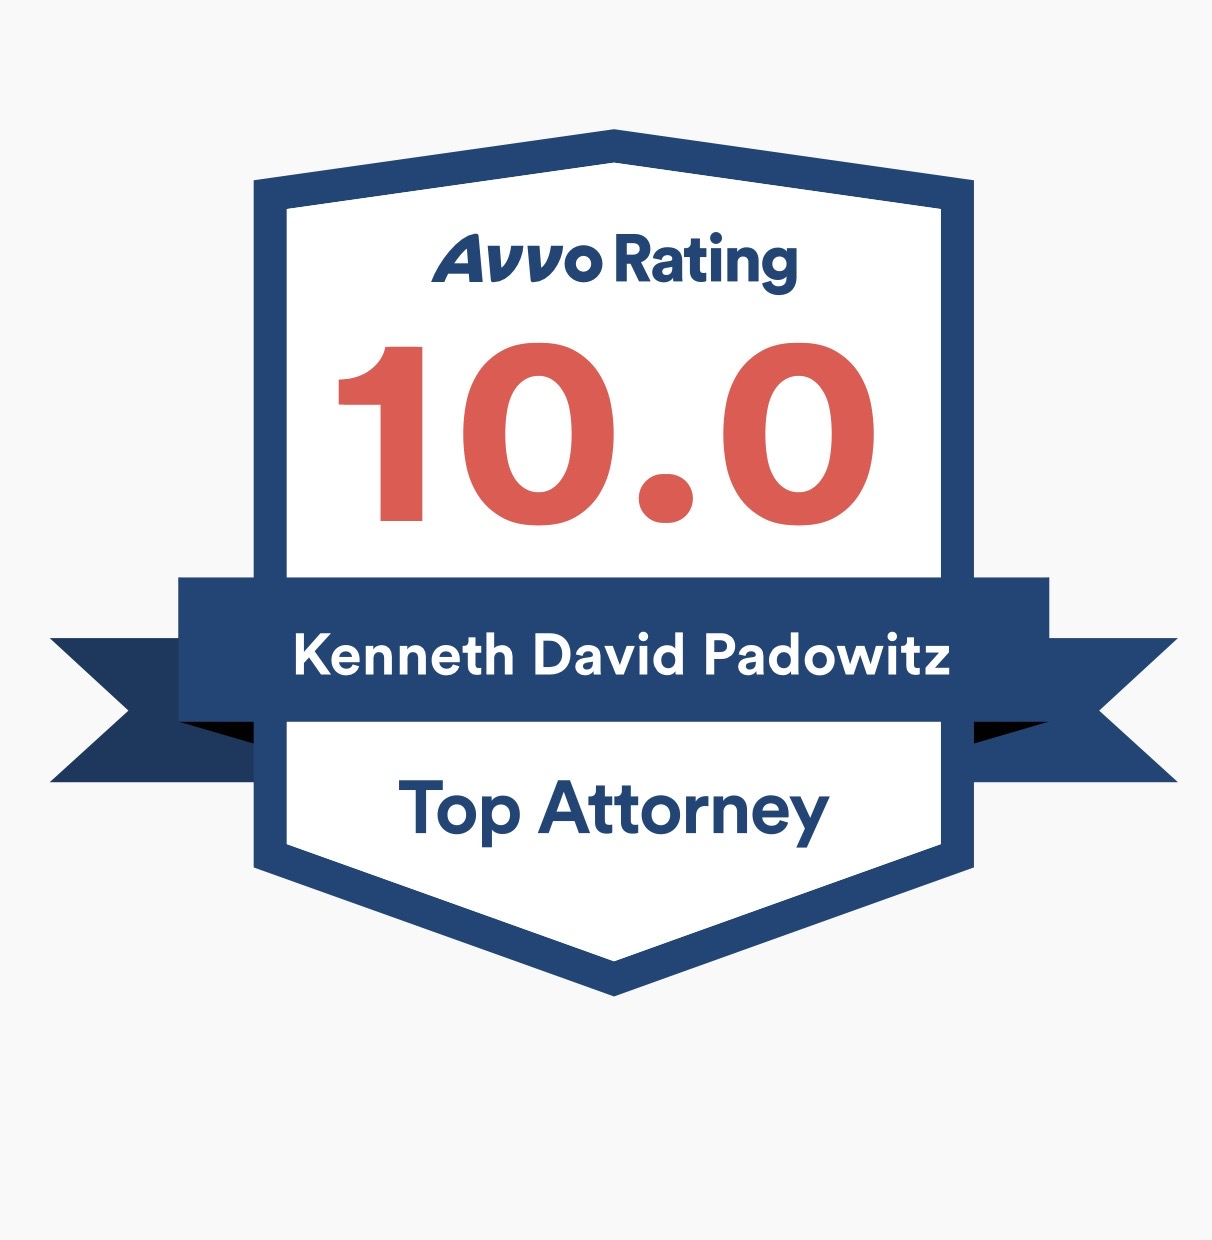 KEN PADOWITZ AWARDED AVVO TOP AWARDS FOR 2019